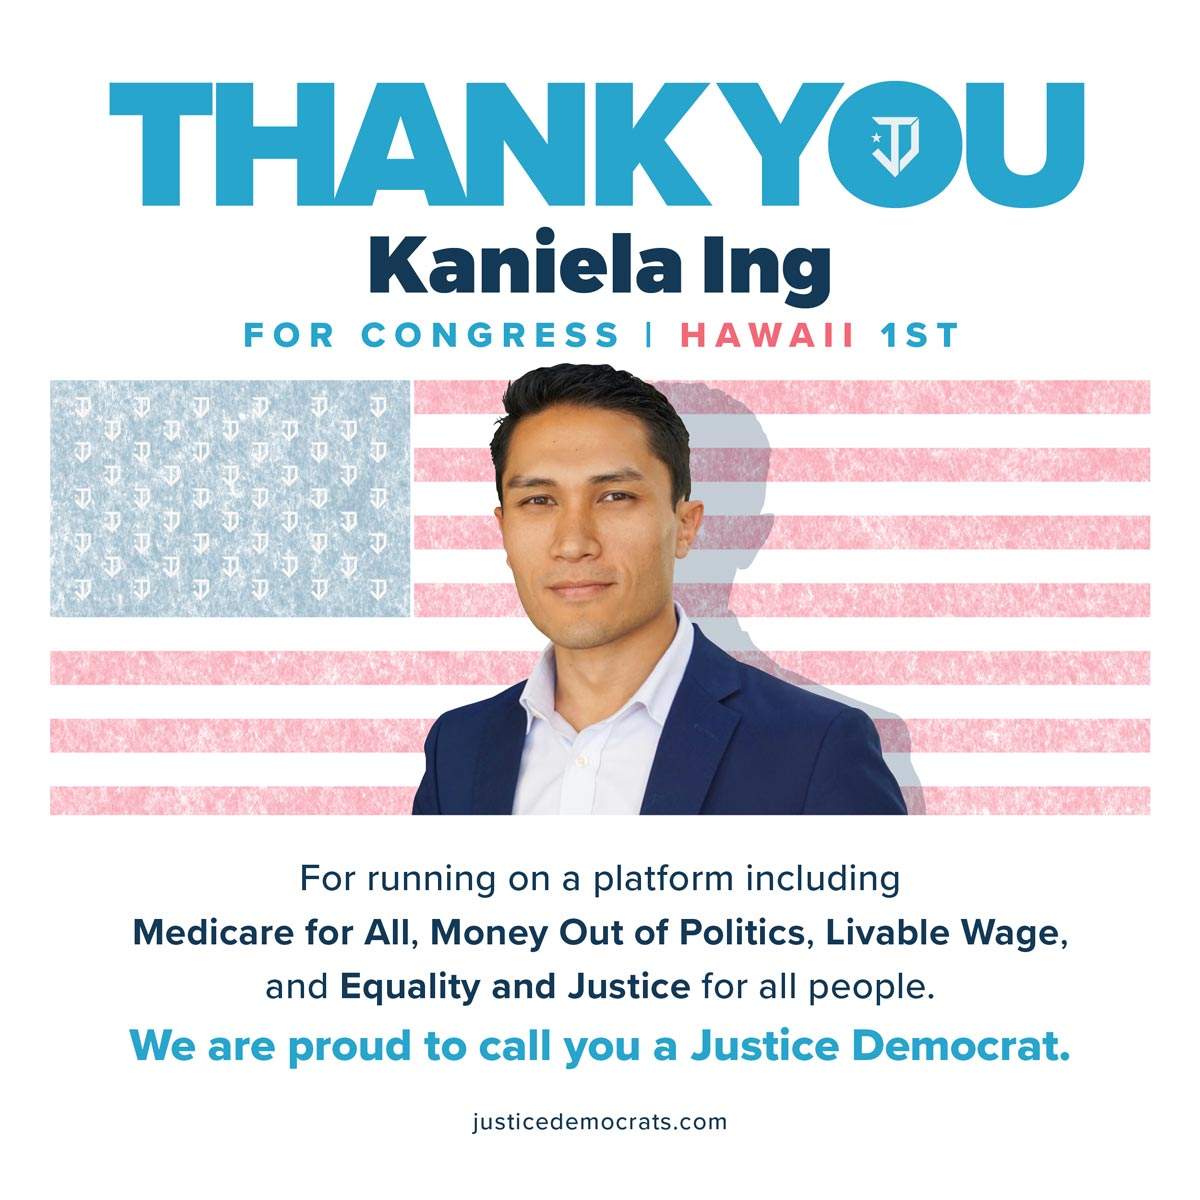 Thank you @KanielaIng for being a tireless advocate for progressive values. Because you shared your vision for a Hawaii that works for everyone and Medicare for all is now supported by the Dem nominee. We are excited to continue this political revolution with you. #FightForAloha <br>http://pic.twitter.com/6dBsSX2KKW